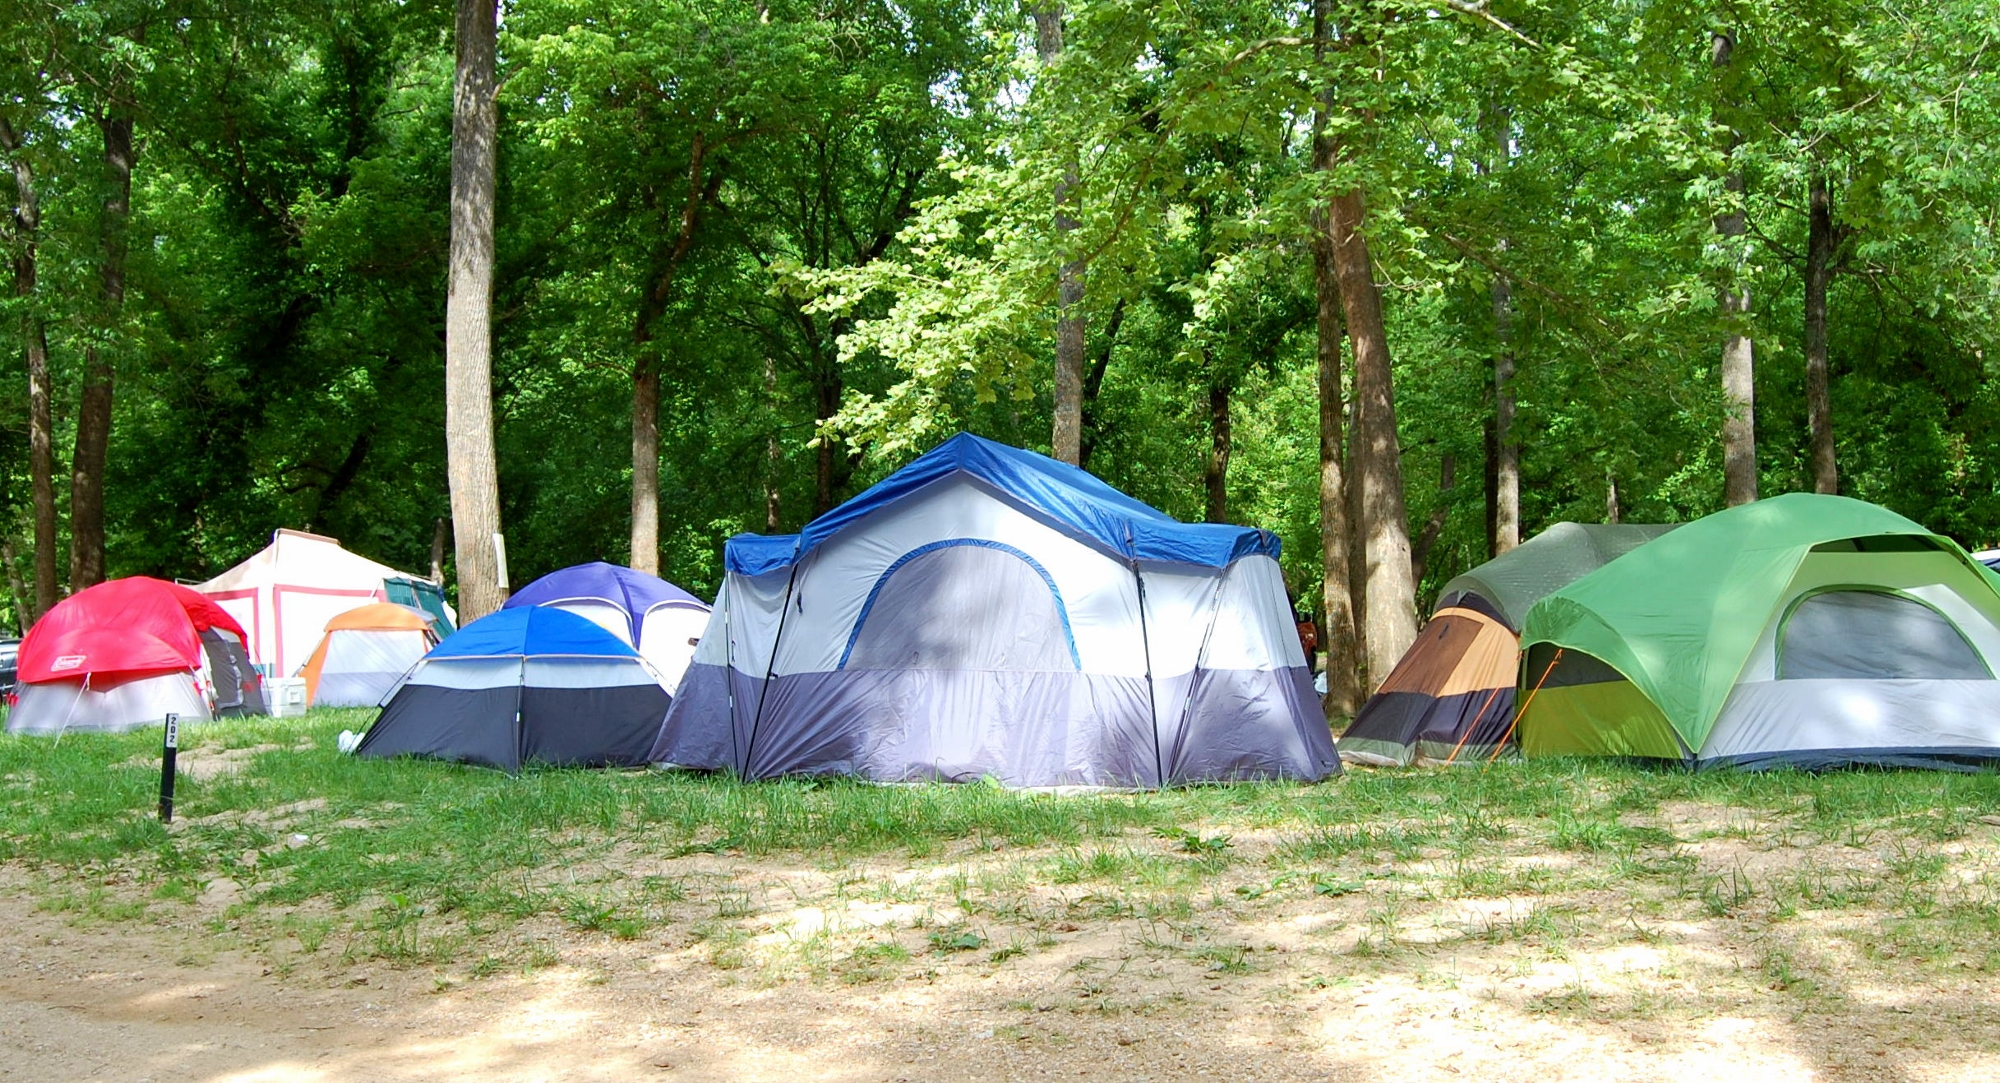 Group camping sites at ozark outdoors ozark outdoors for Missouri fishing license walmart